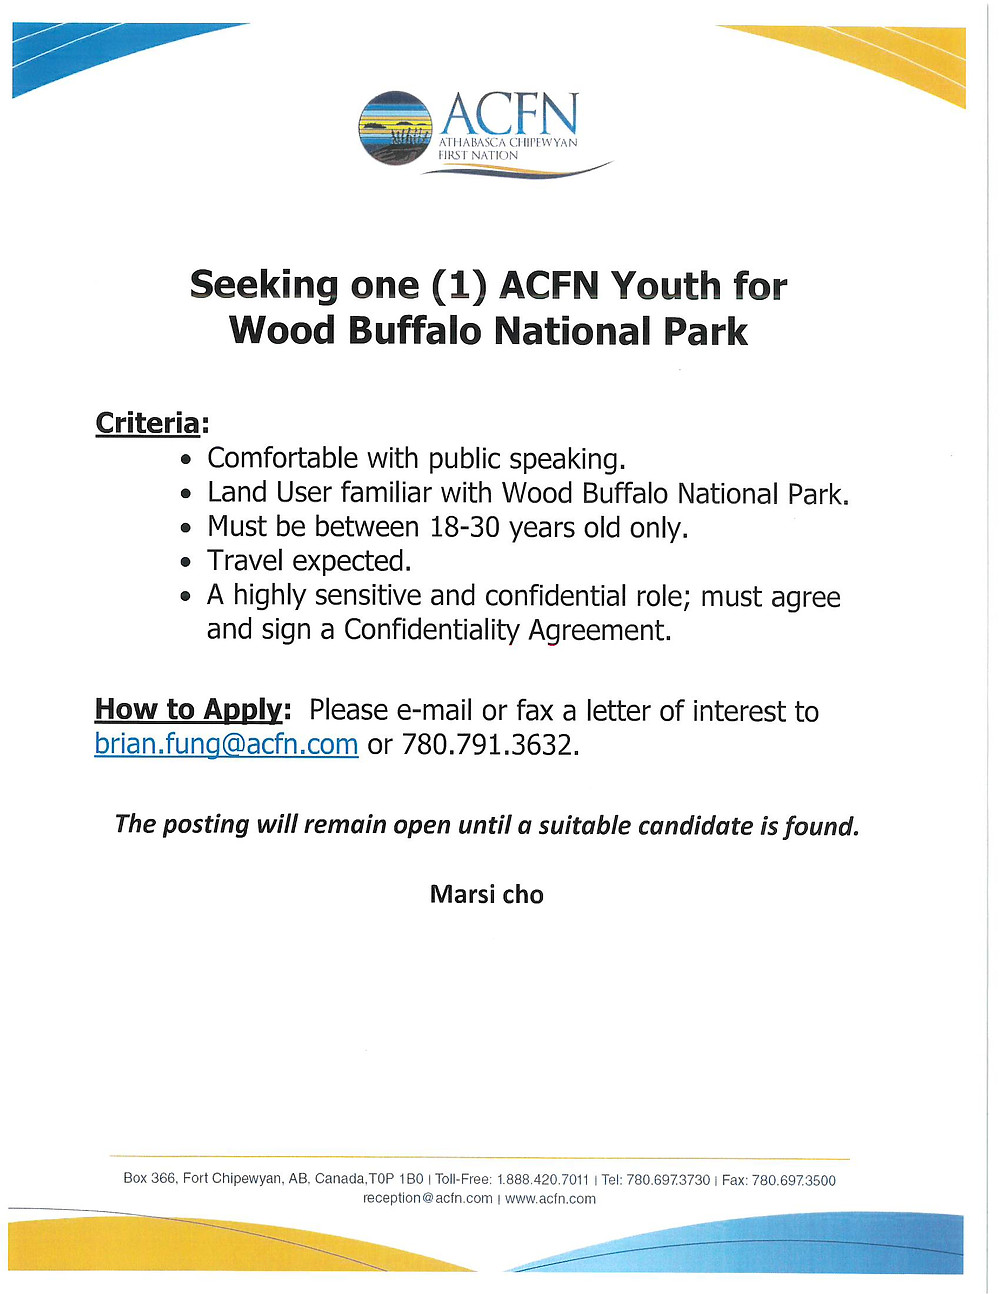 This is an opportunity for one selected ACFN youth to work and mentor with Elder/Negotiator Pat Marcel.